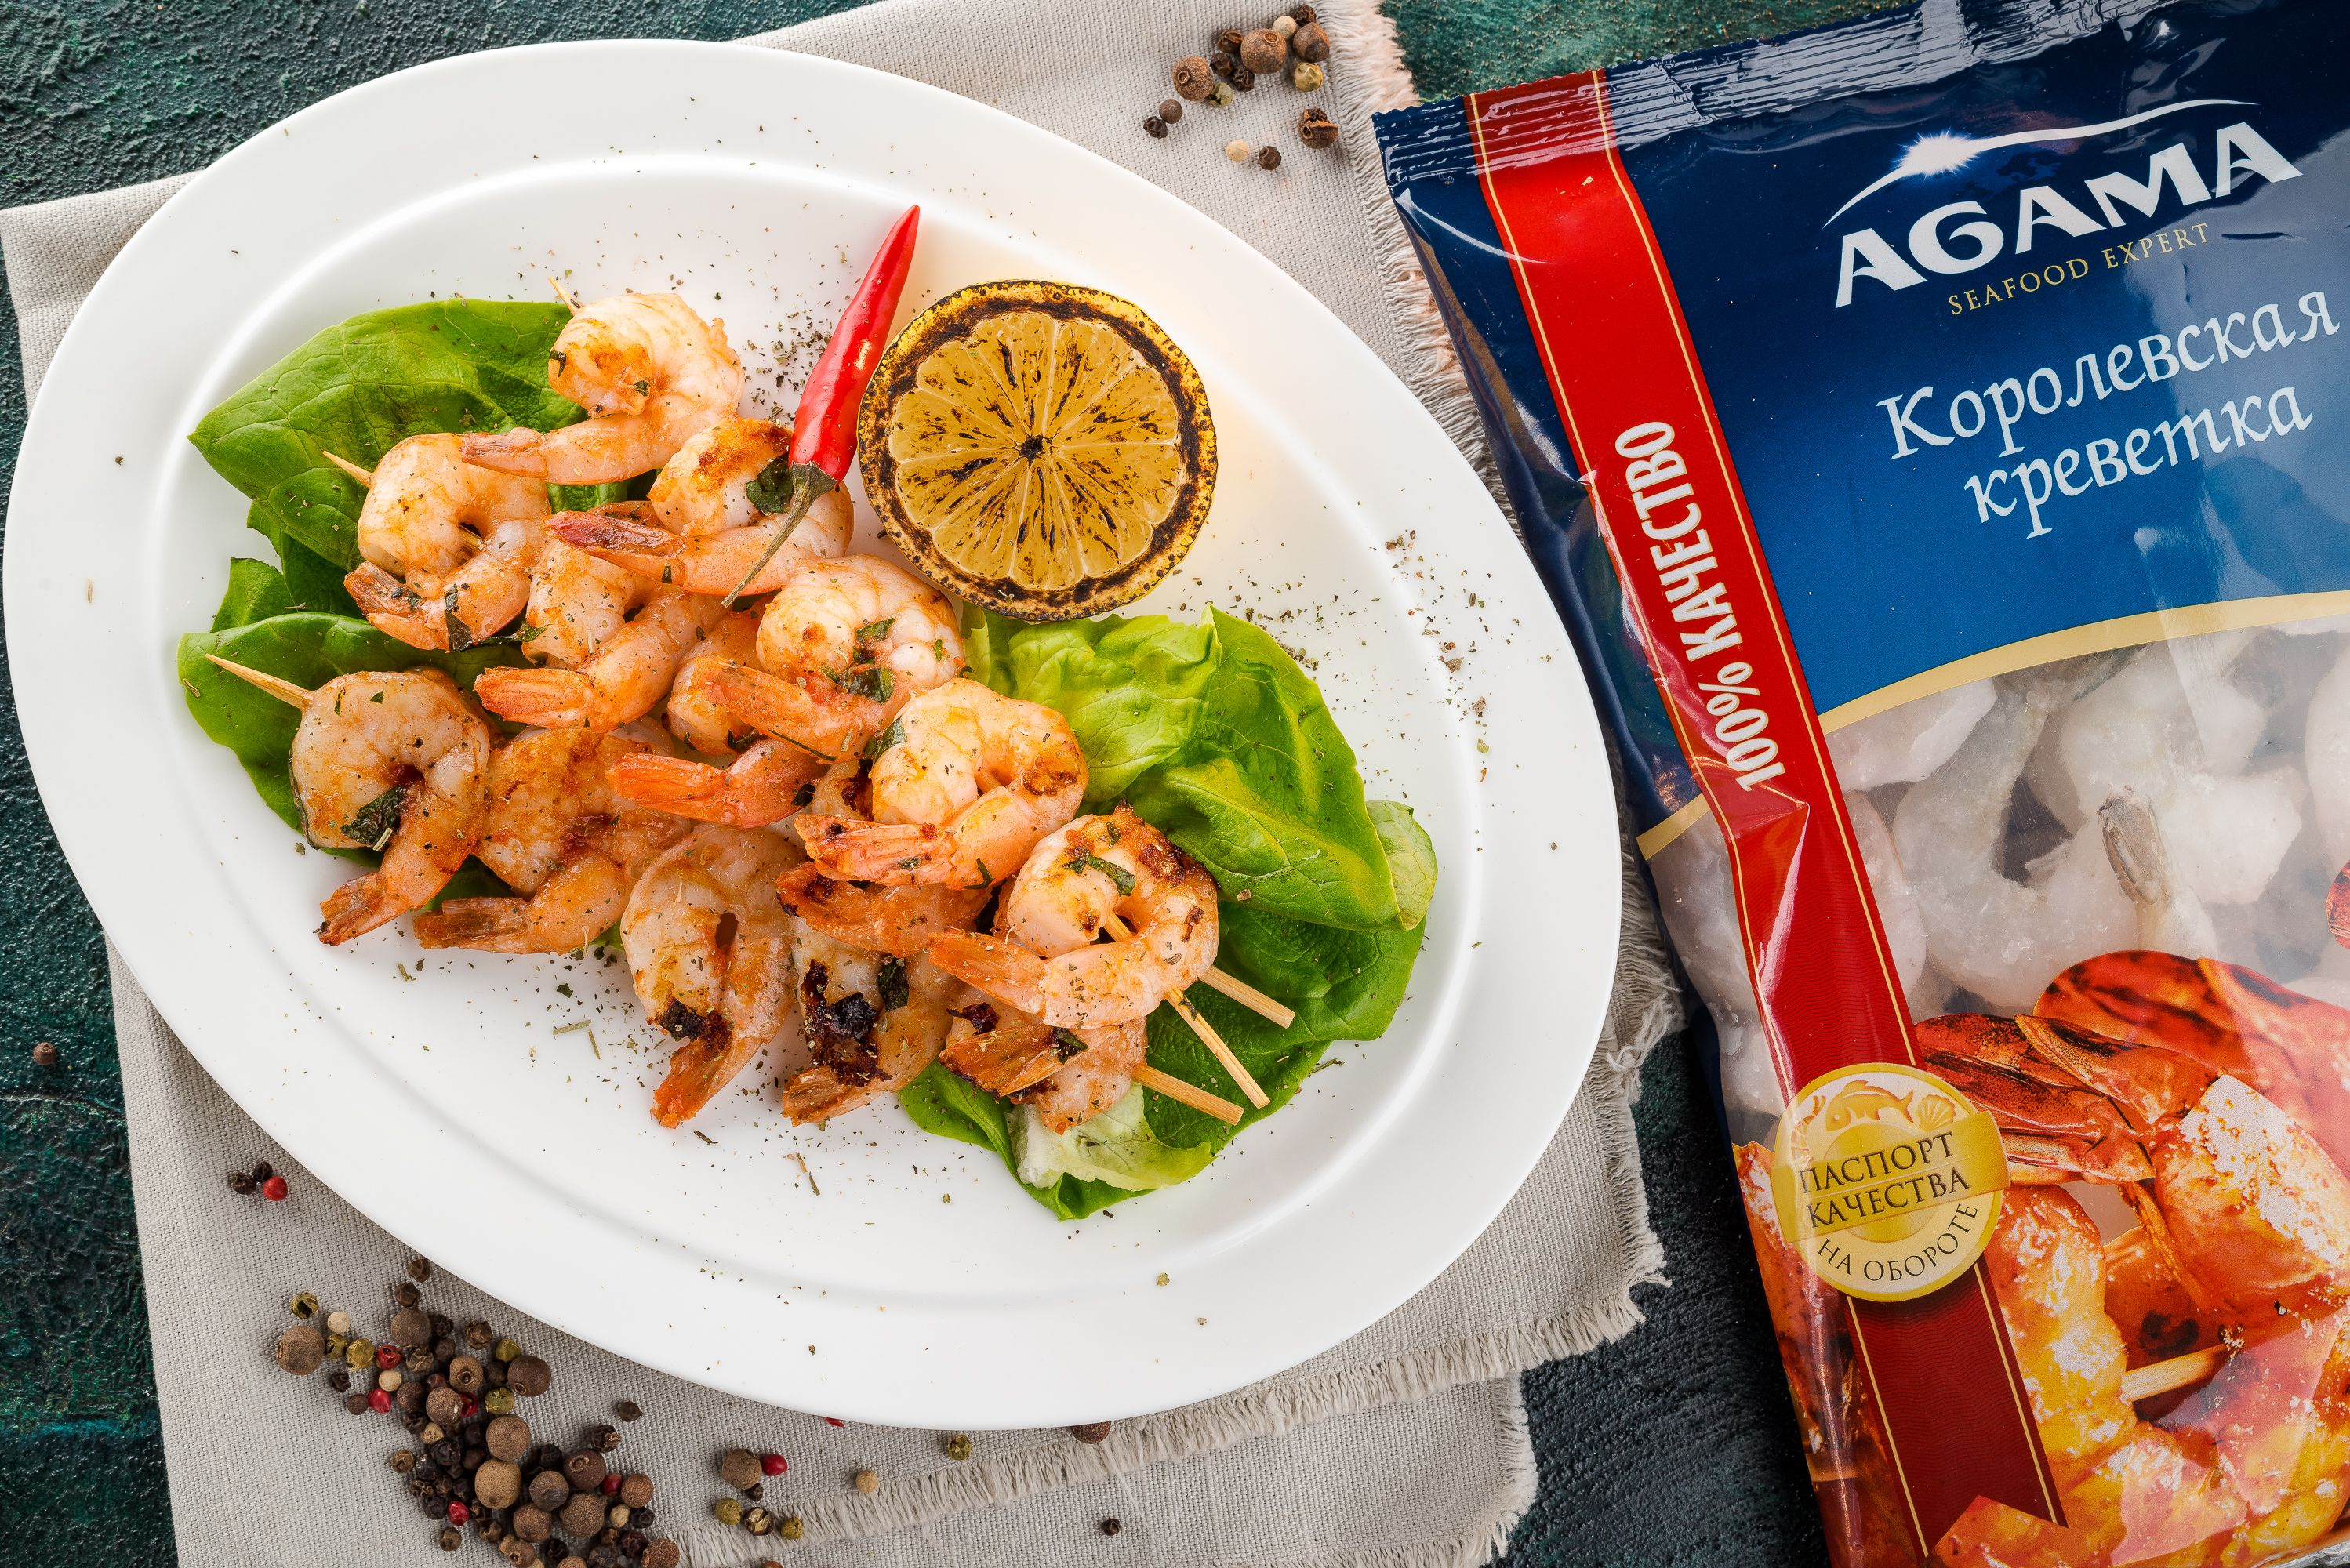 Grilled shrimps in tomato sauce